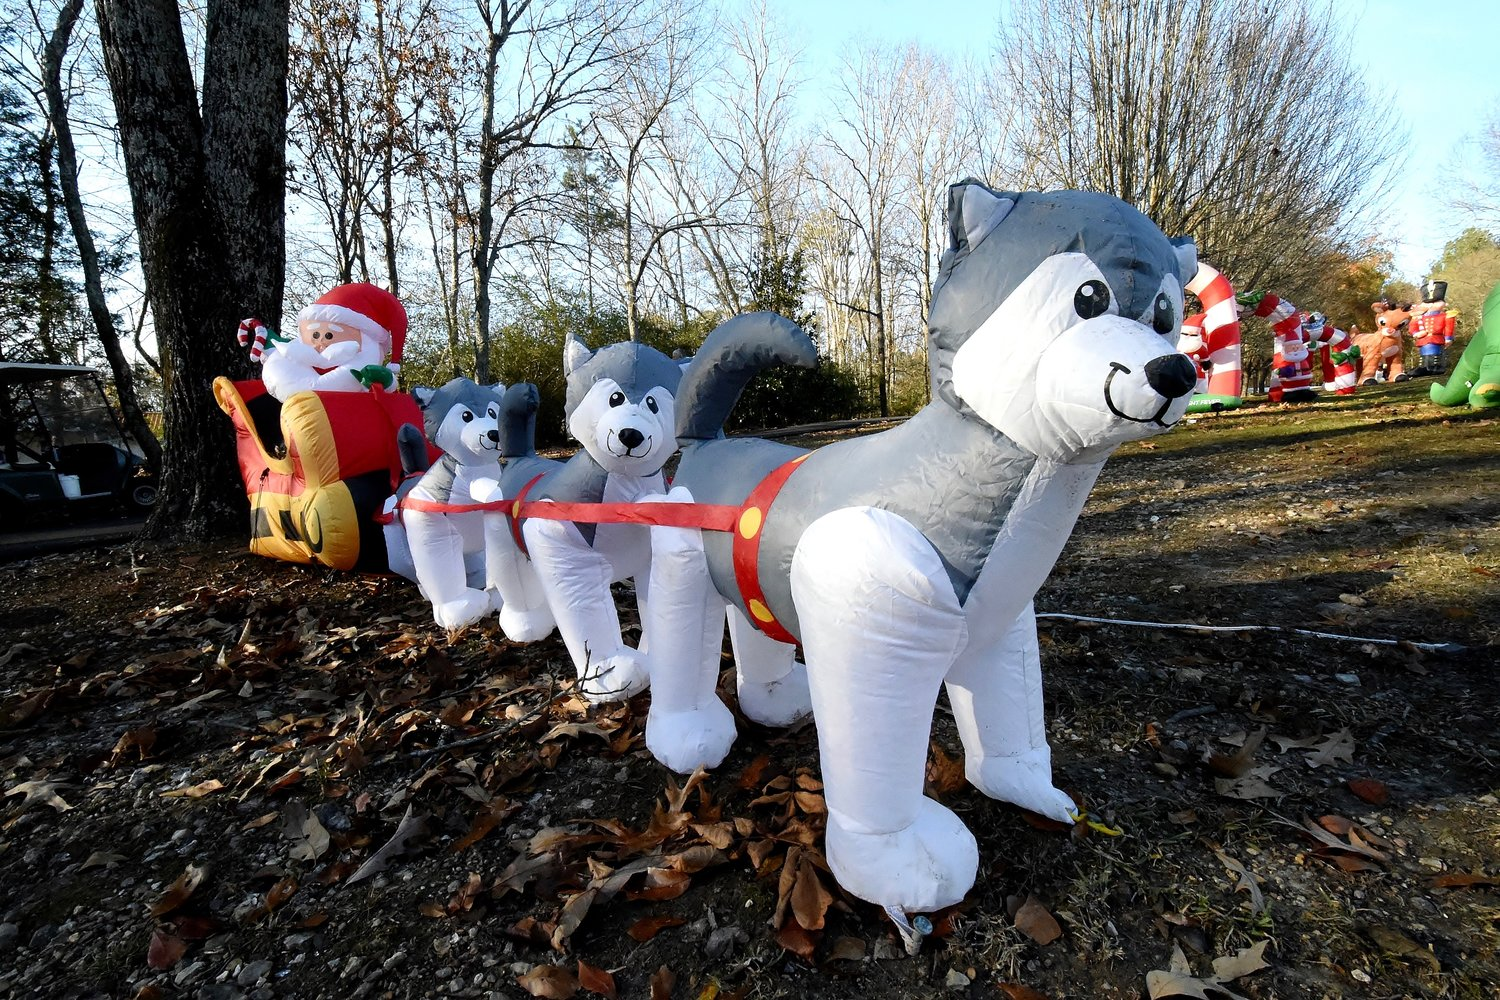 One of the inflatables on the lawn of Jerry and Sheila McGuirt features a team of Siberian huskies pulling Santa's sled.